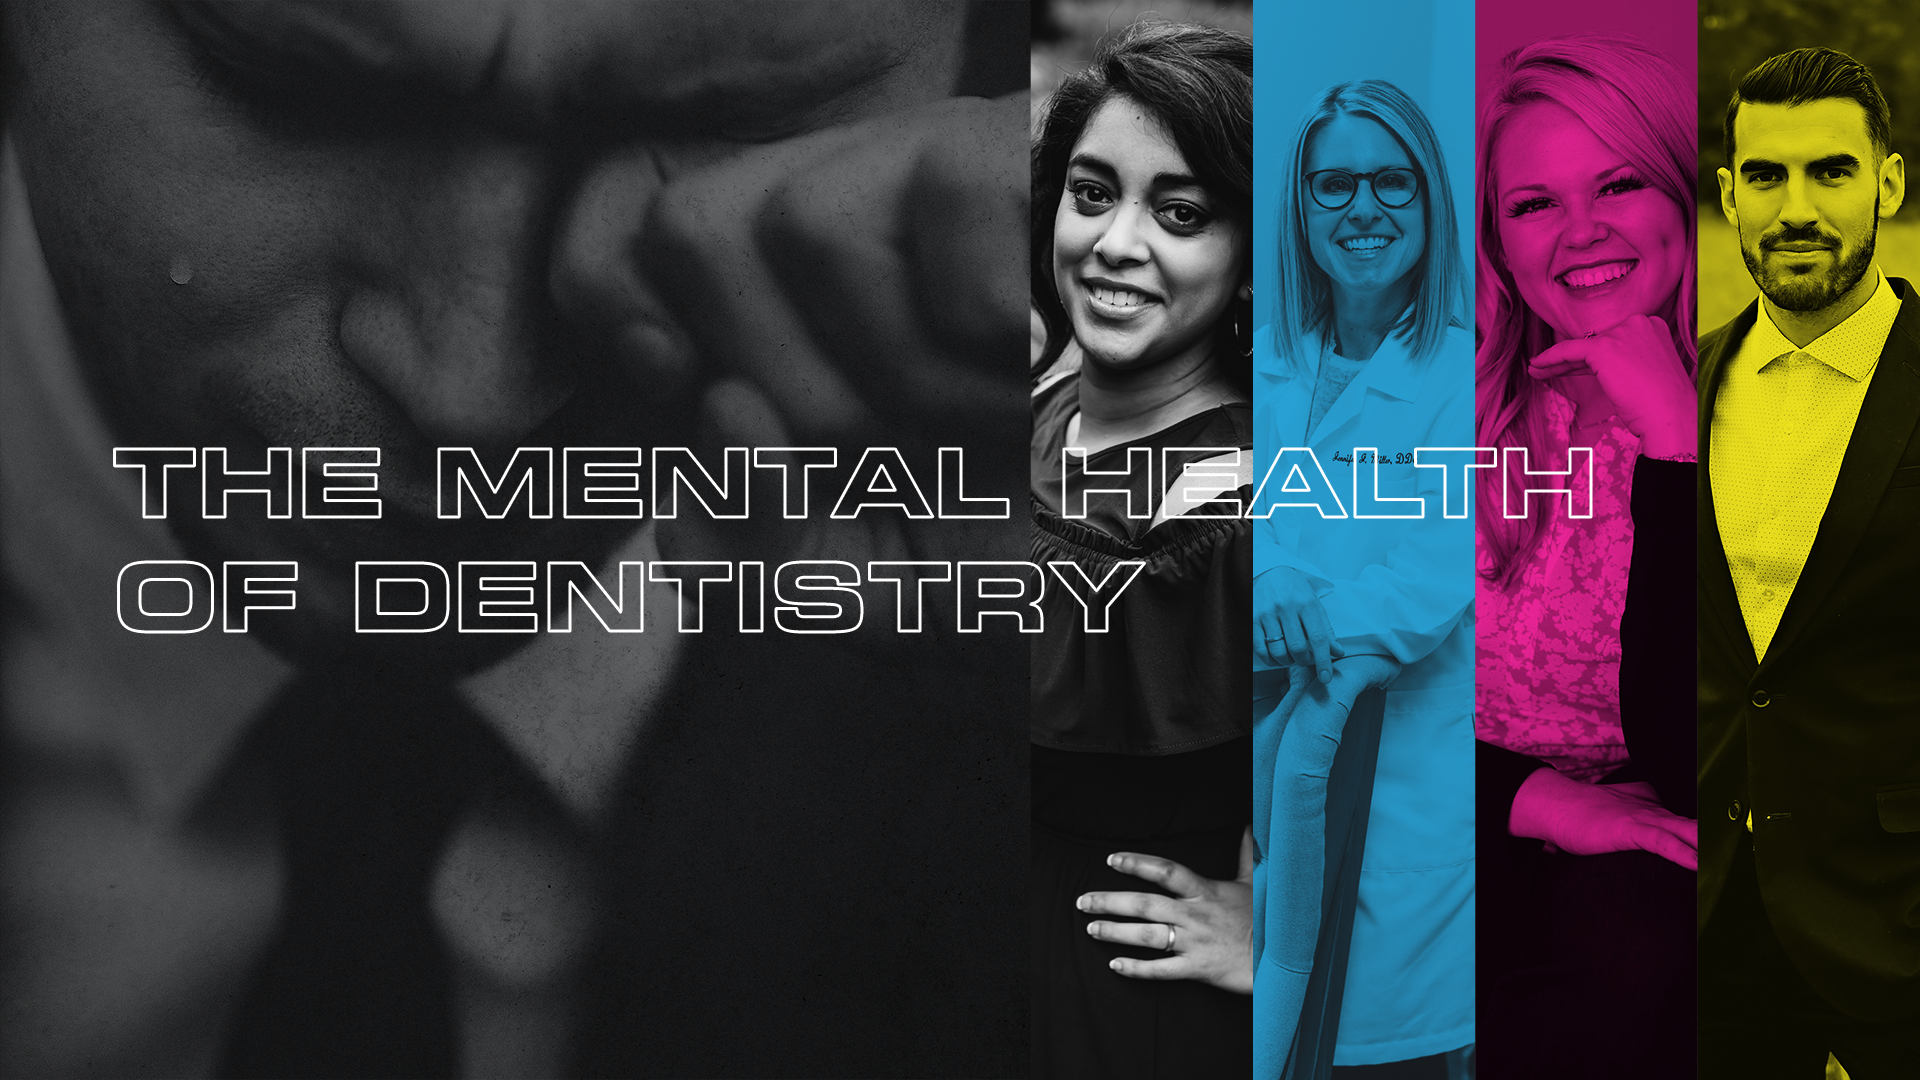 The Mental Health Of Dentistry